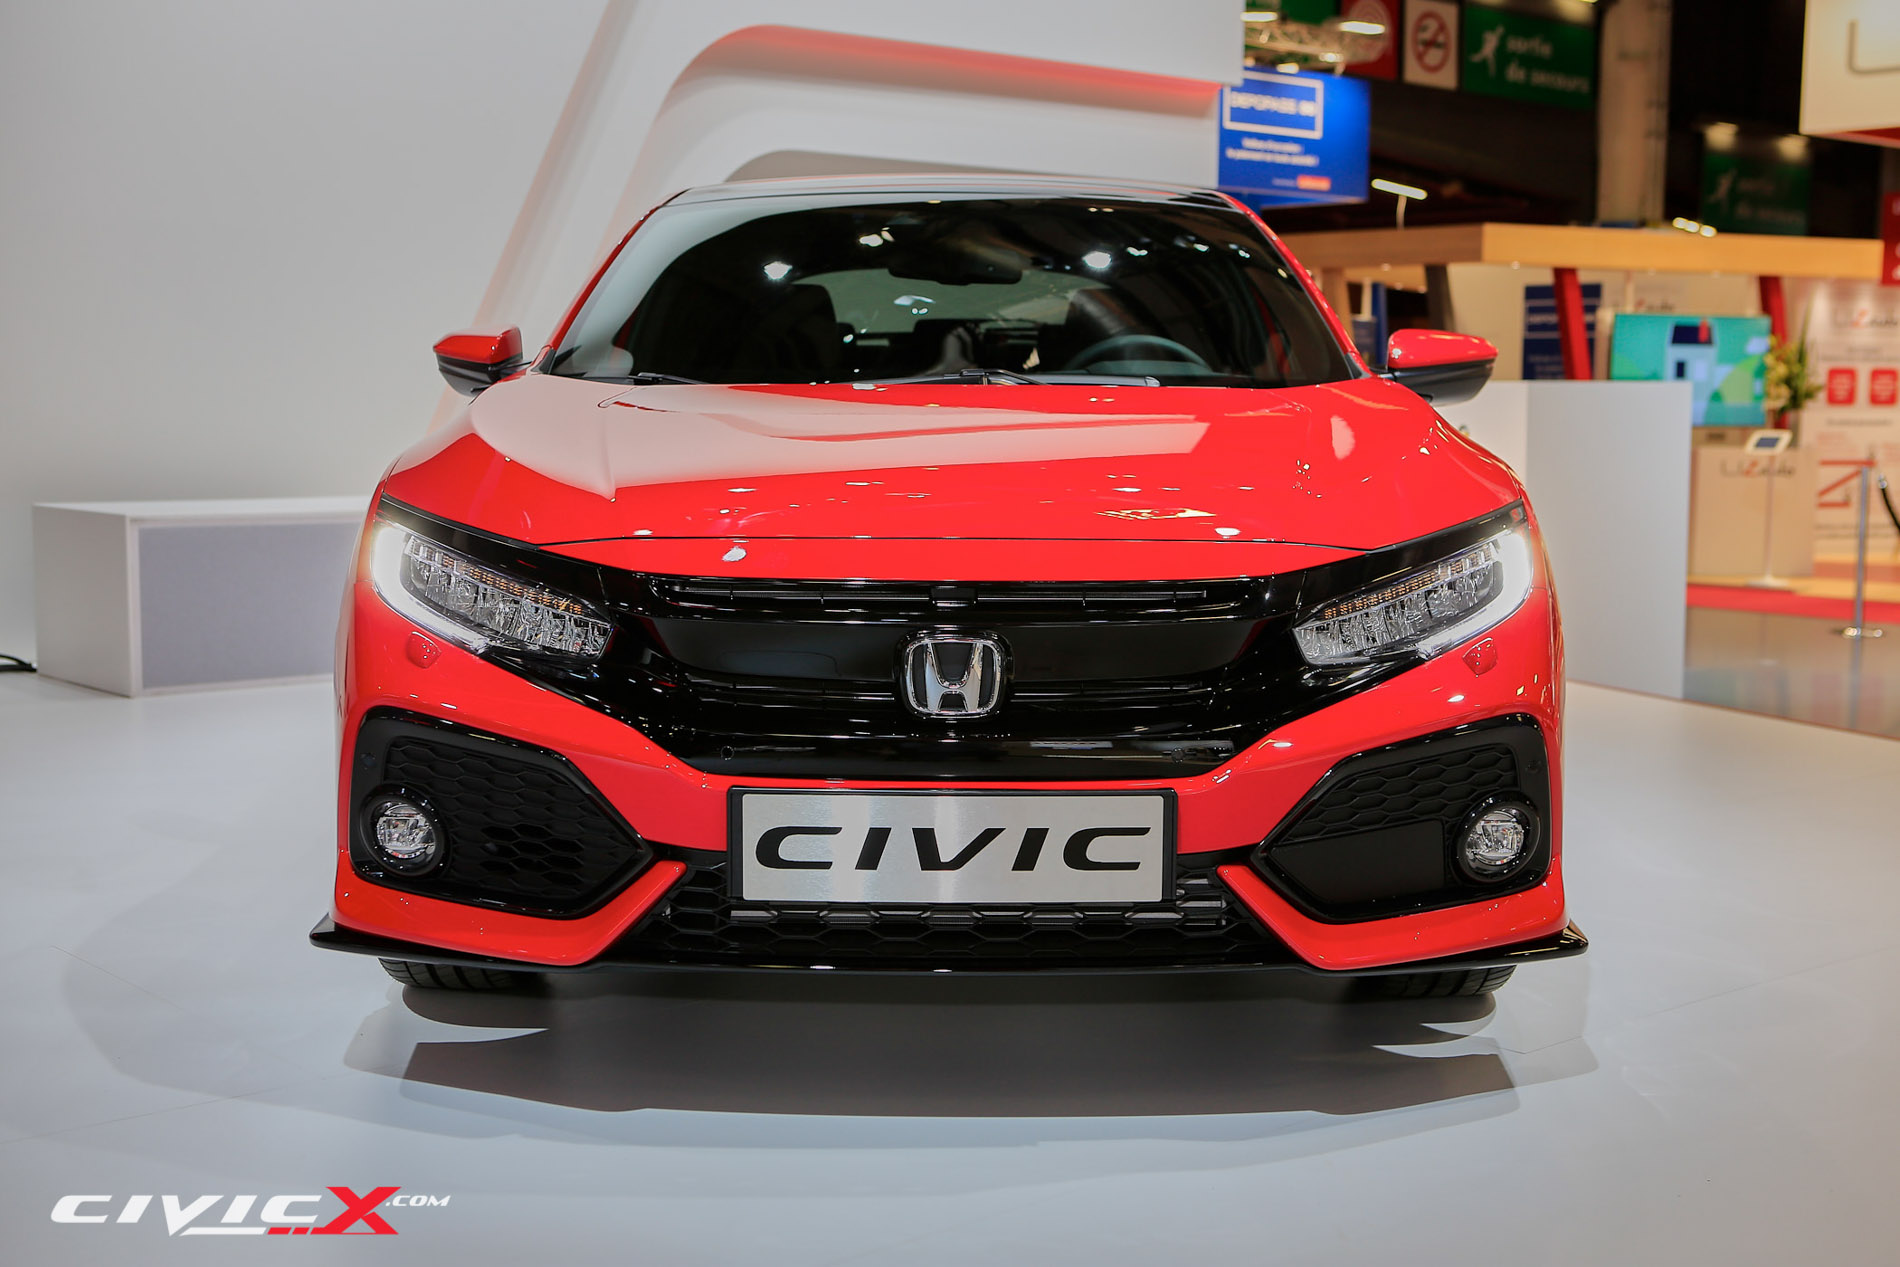 _TB_8786_Honda Civic.jpg